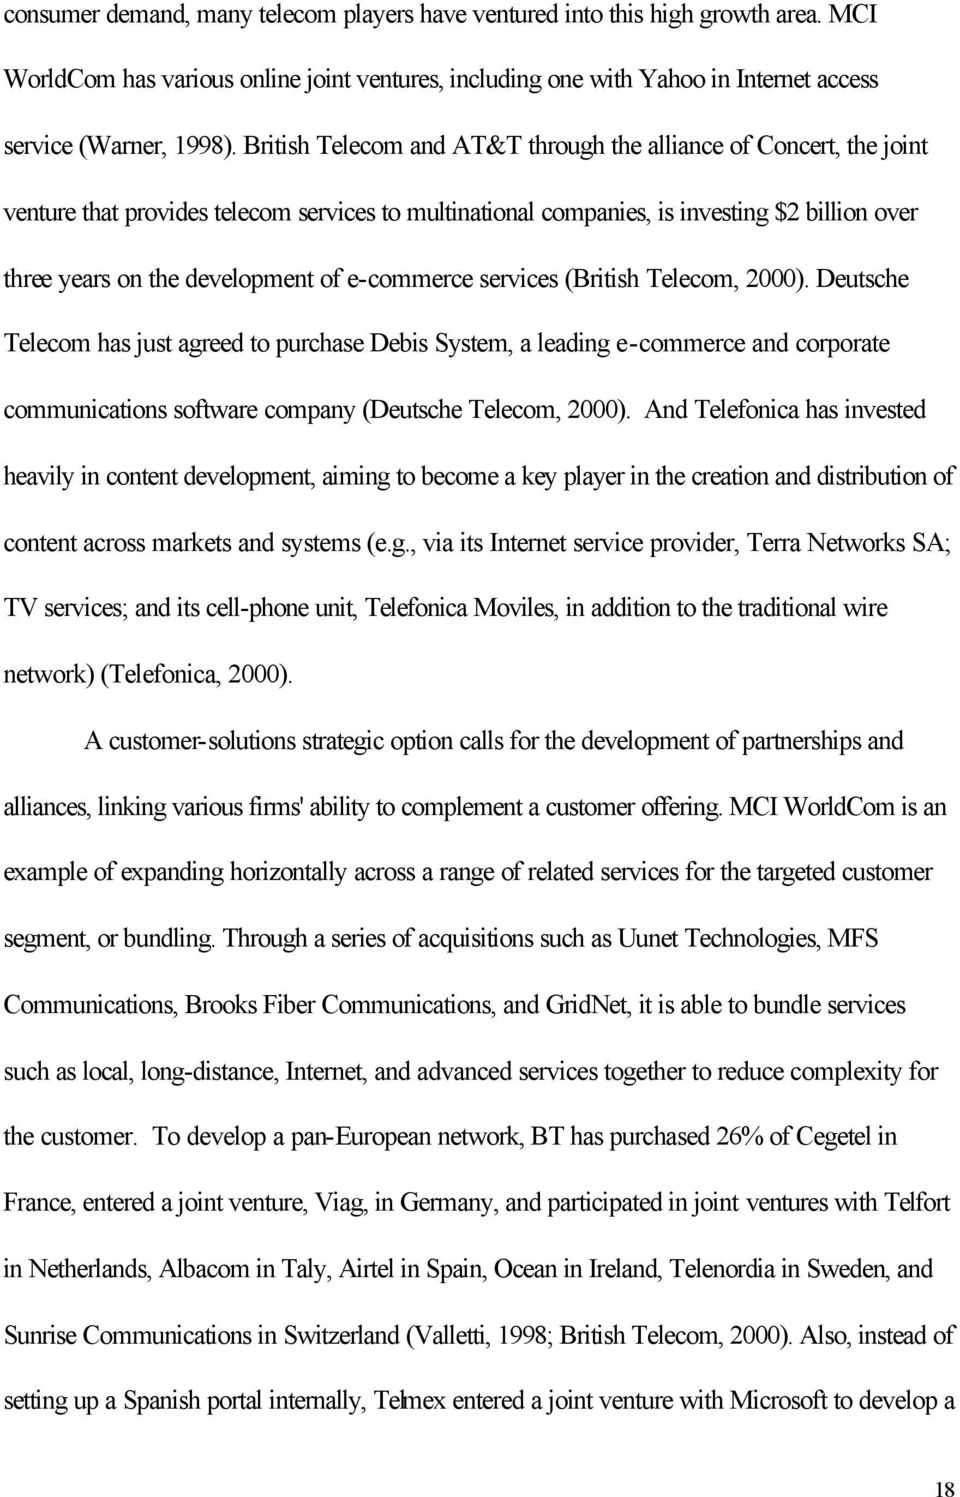 e-commerce services (British Telecom, 2000). Deutsche Telecom has just agreed to purchase Debis System, a leading e-commerce and corporate communications software company (Deutsche Telecom, 2000).